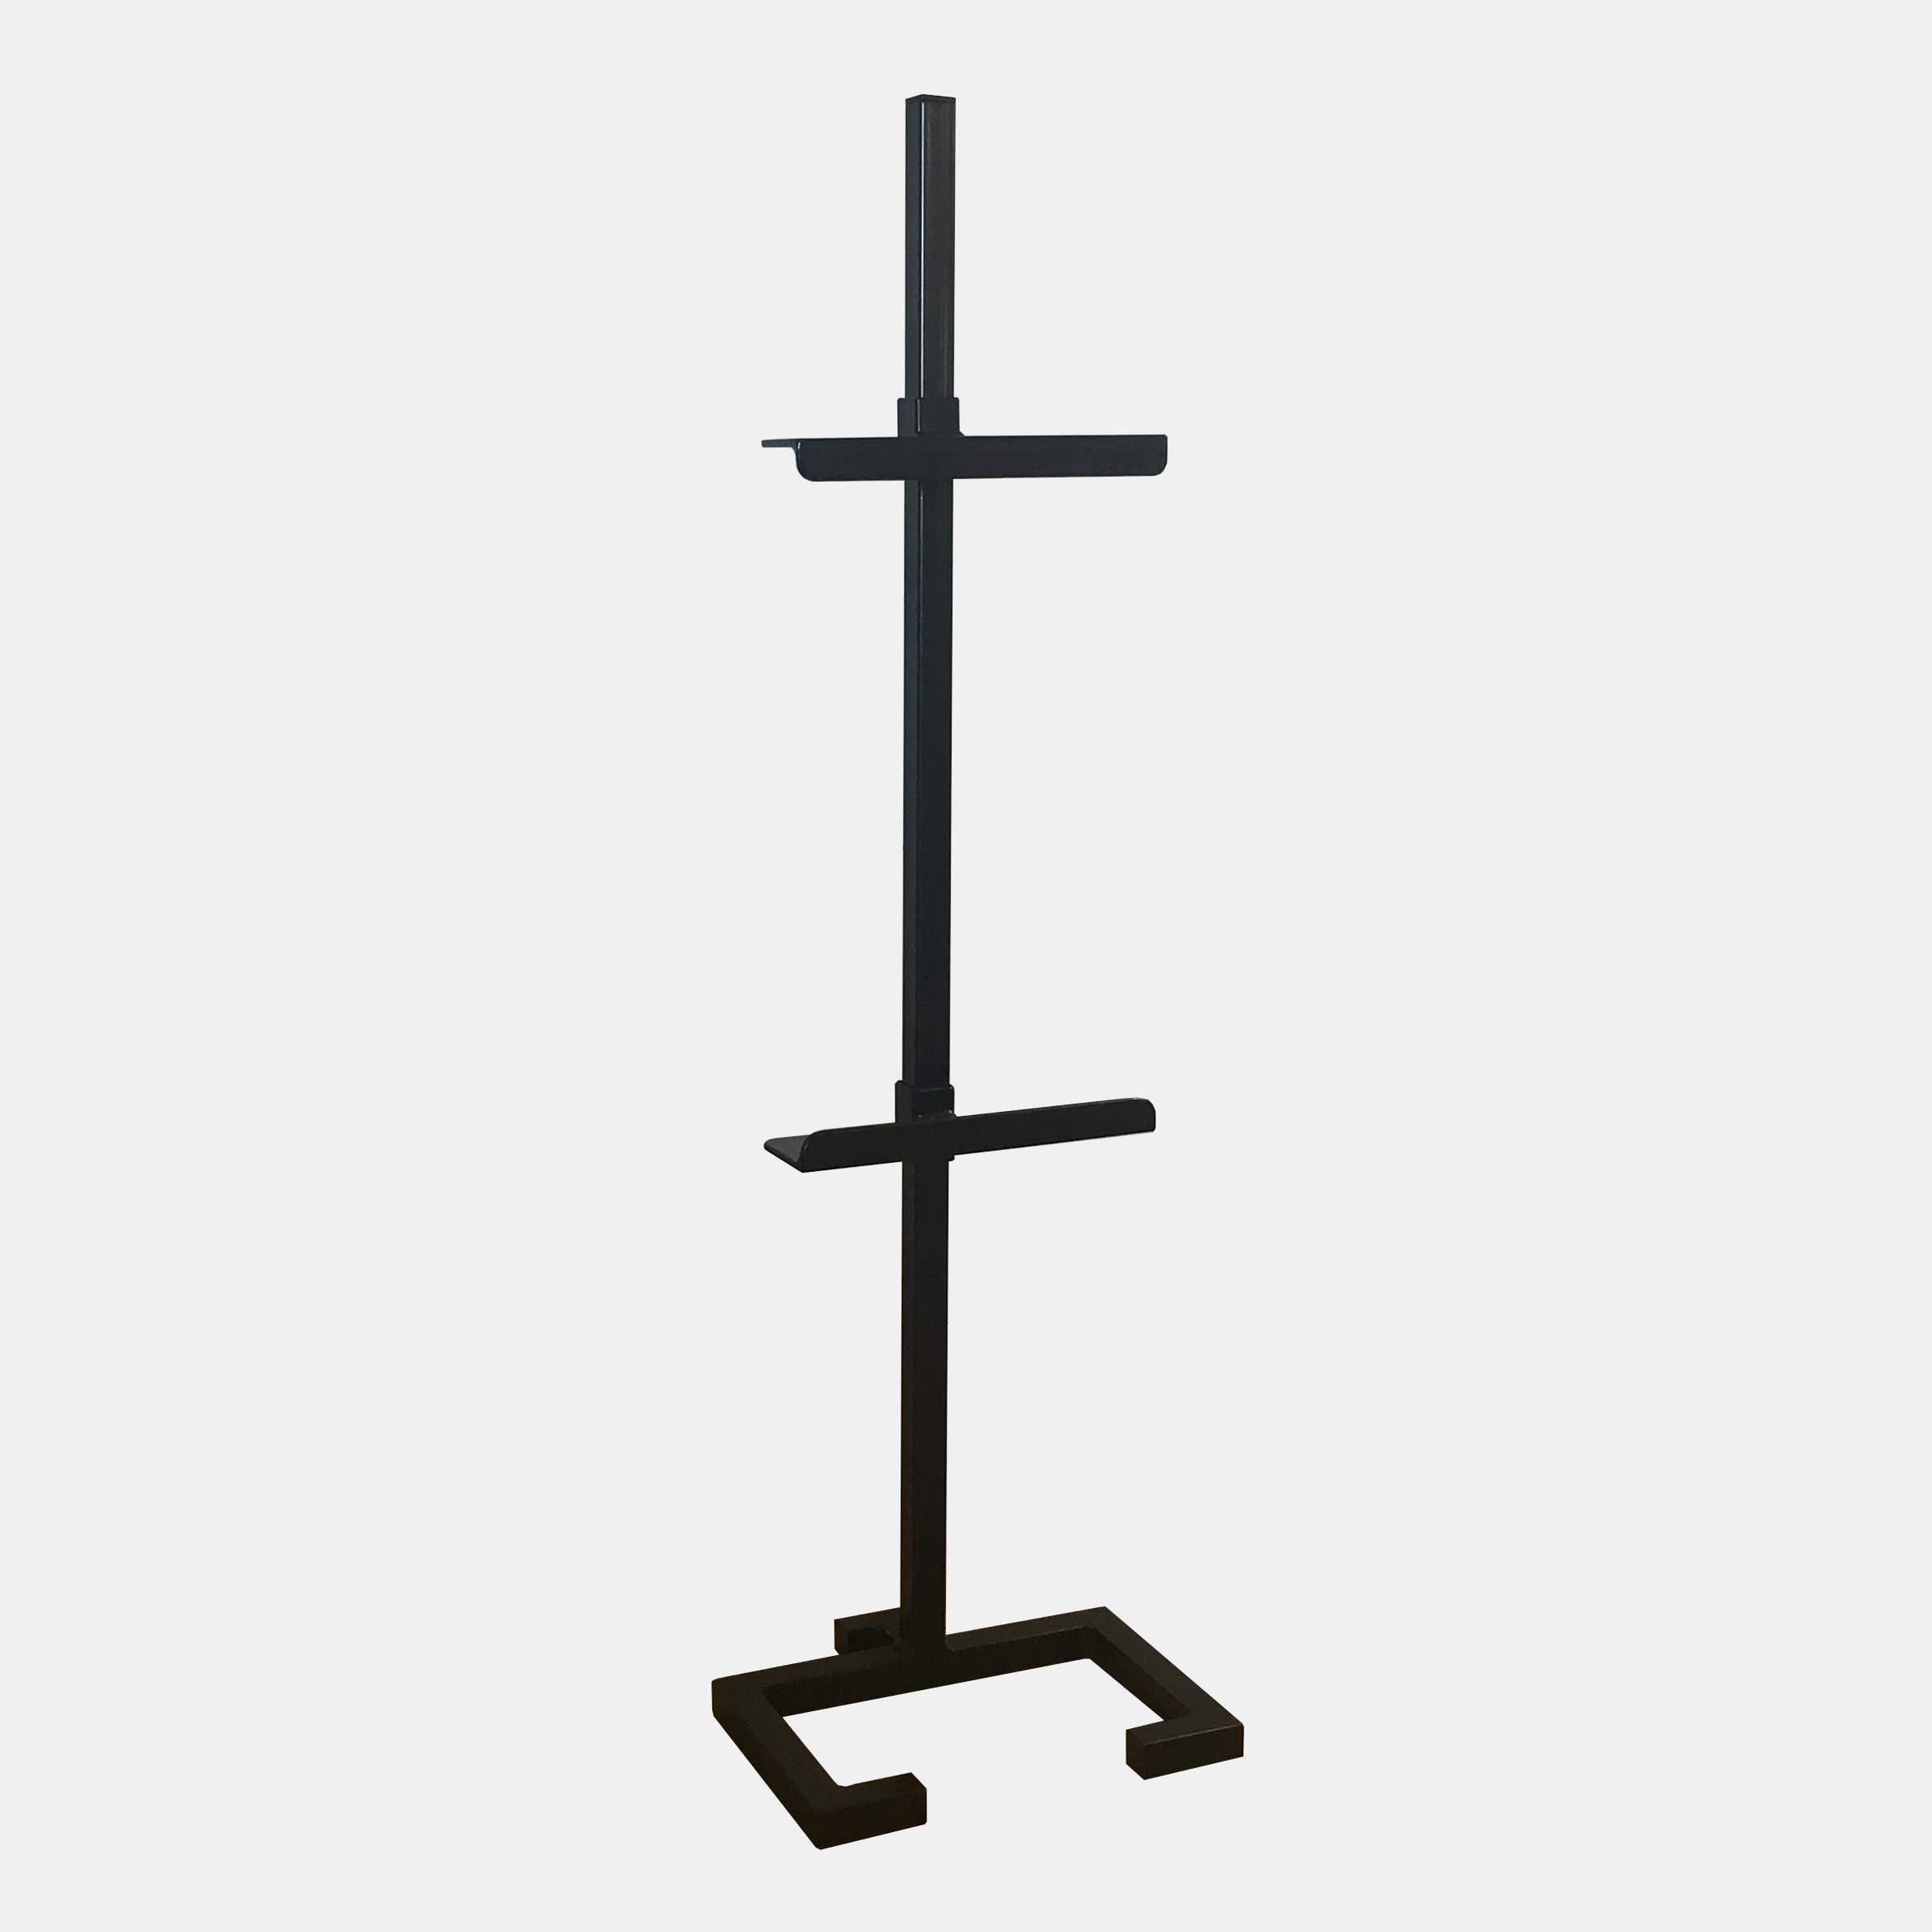 "Small Steel Easel  Black powder-coated steel base with hollow-core post and adjustable brackets. Custom made in Atlanta, GA. Small: 42"" high (for tabletop use), 12""x10.5"" base. All brackets 2.5"" deep. Additional brackets available for use with two pieces of art. SKU449FMW"